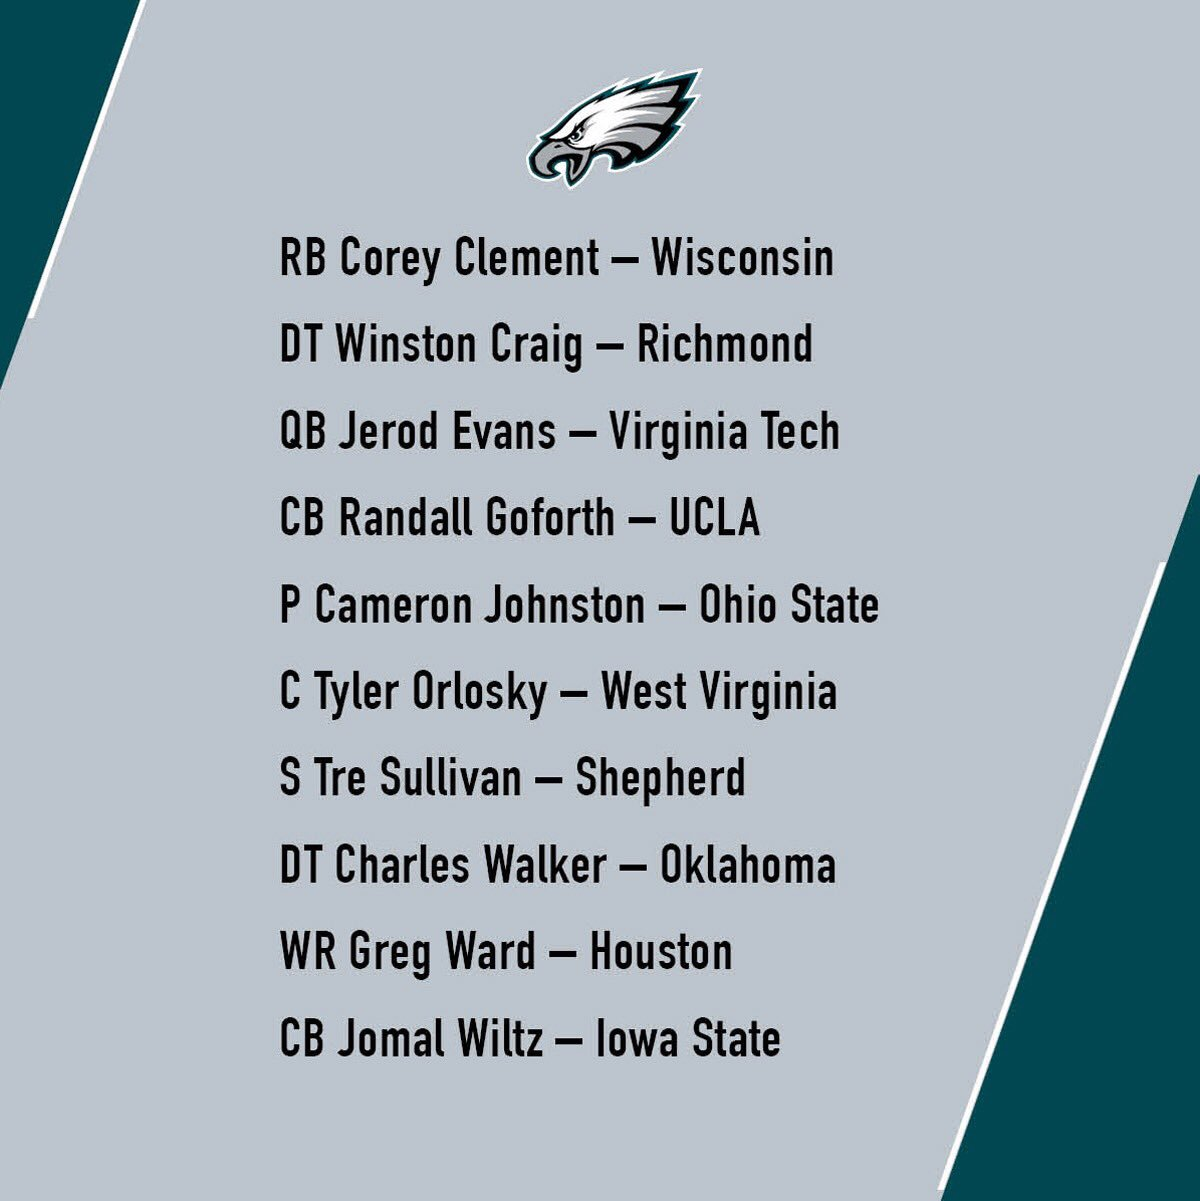 #Eagles have signed 10 undrafted free agents ahead of this weekend's rookie mini-camp. #FlyEaglesFly https://t.co/NkOGHPA6PY